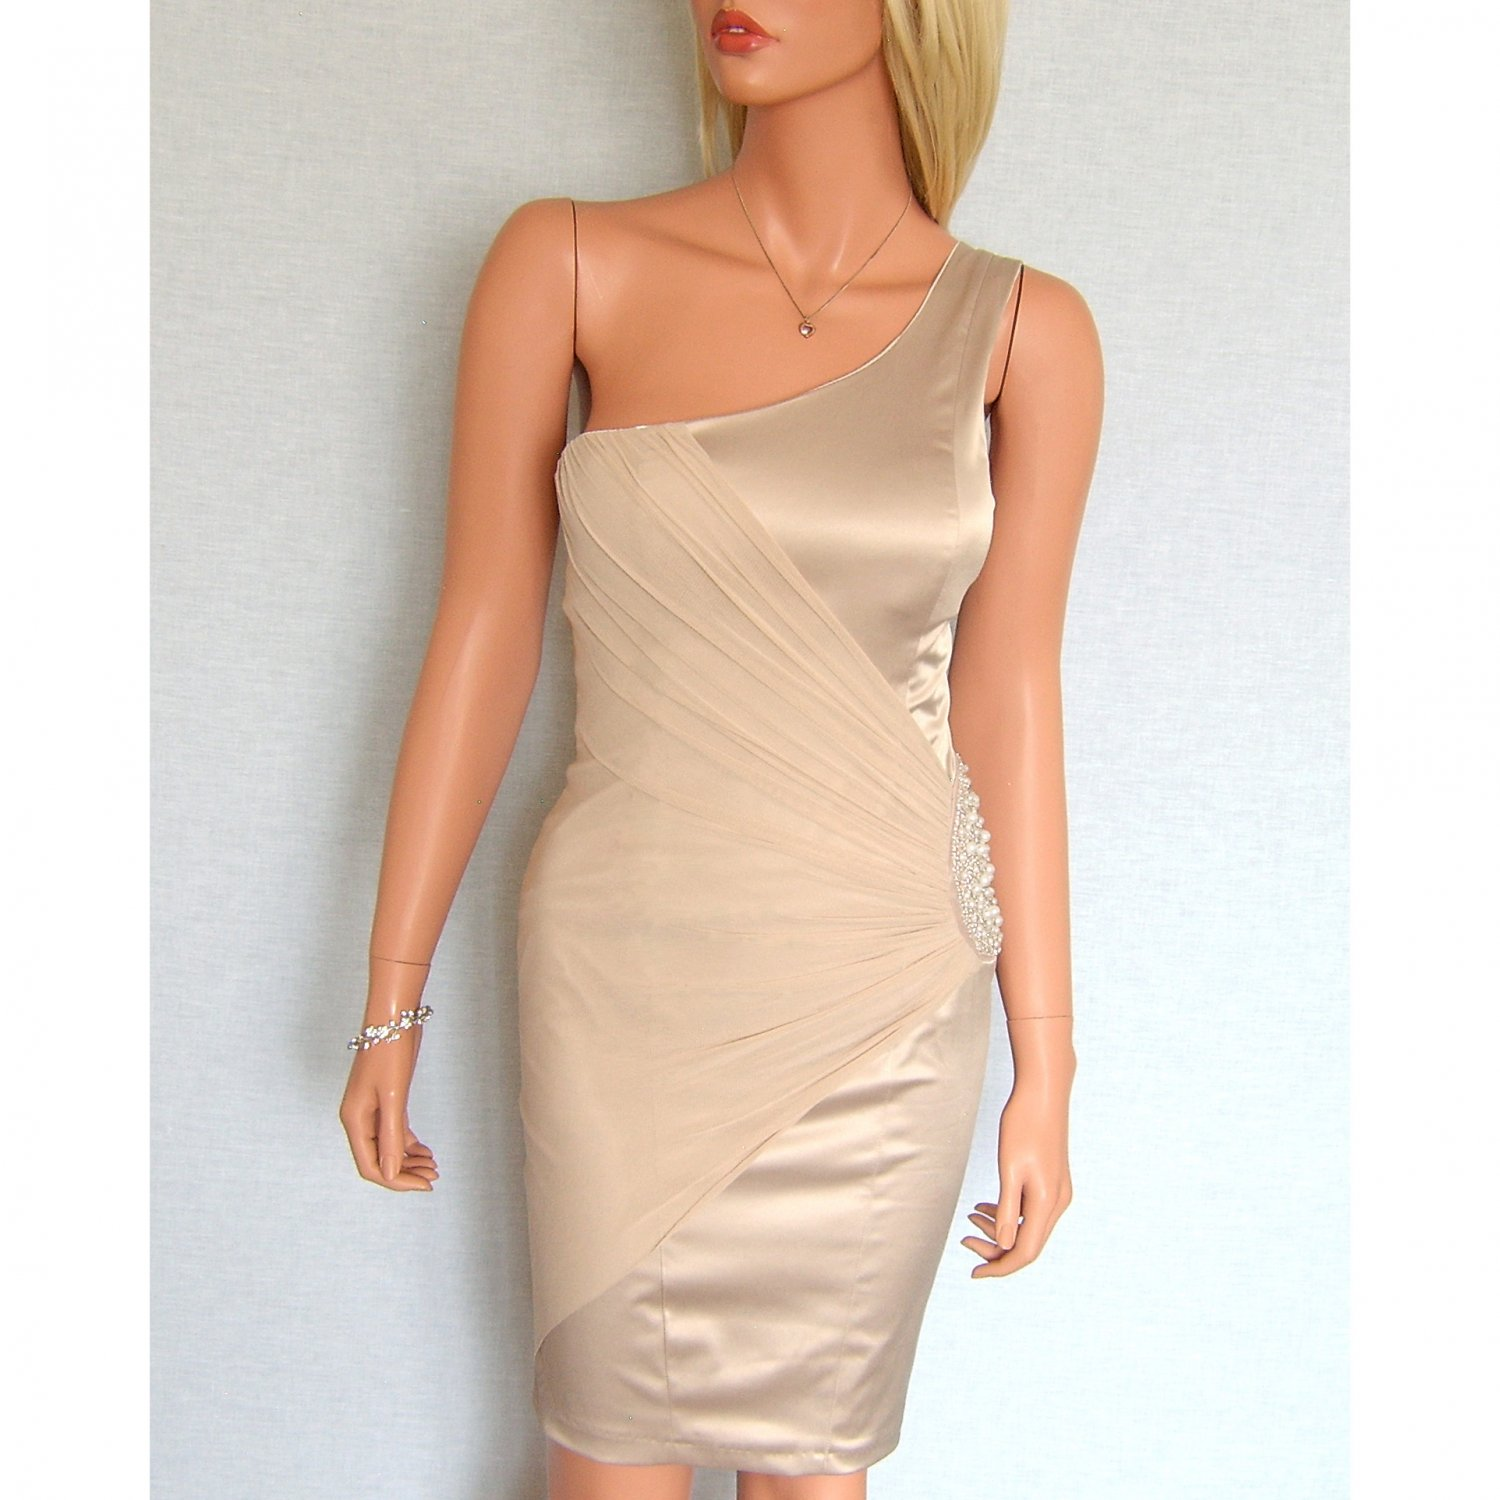 ELISE RYAN TOPSHOP NUDE PEARL BEADED EVENING BODYCON MINI COCKTAIL CLUB PARTY PROM DRESS UK 10, US 6